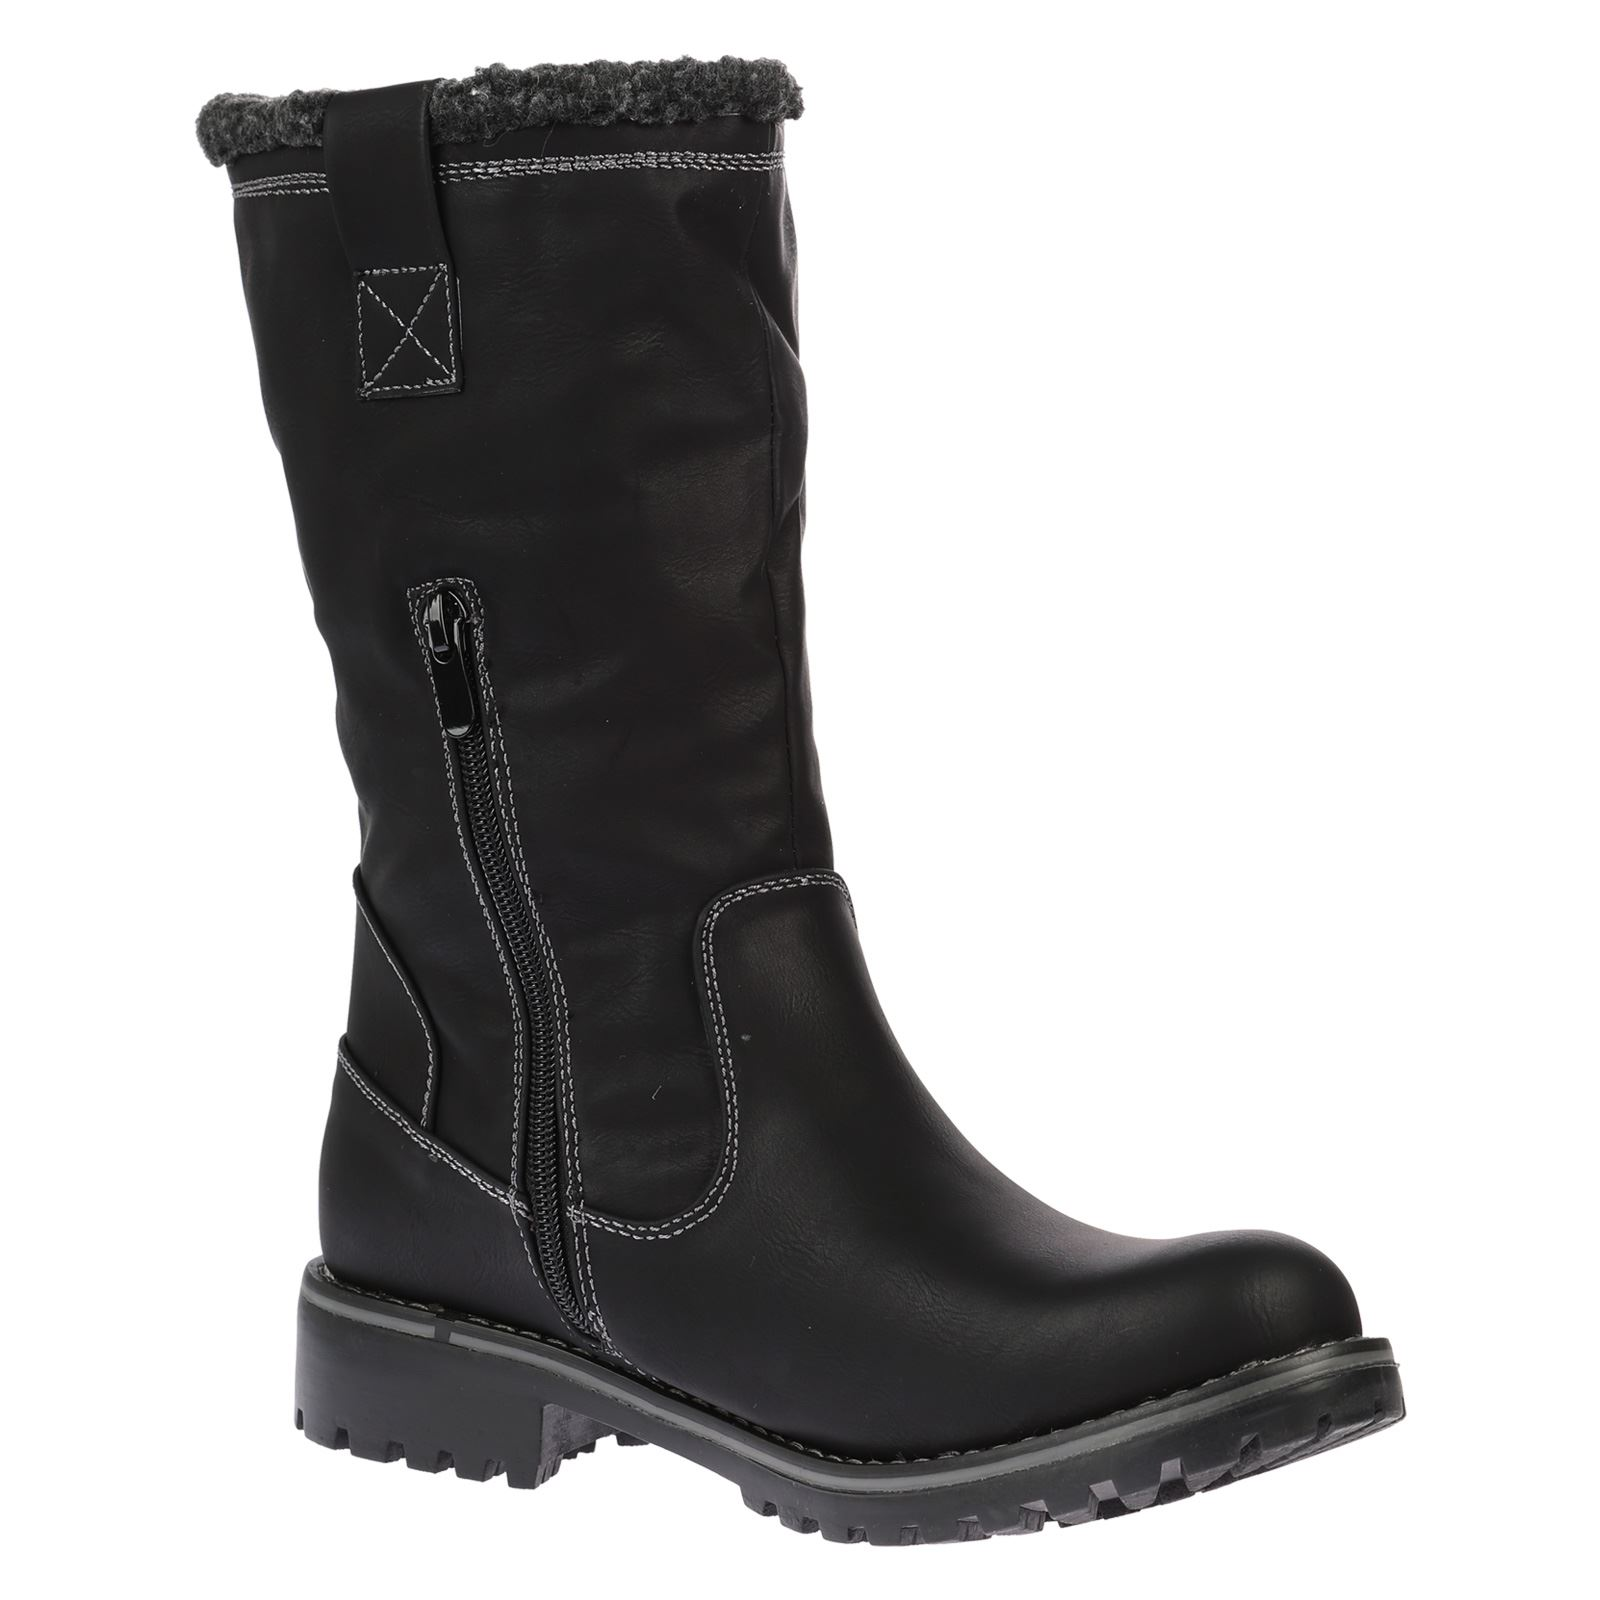 WOMENS BOOTS LADIES MID CALF ANKLE WARM WINTER ICE GRIP